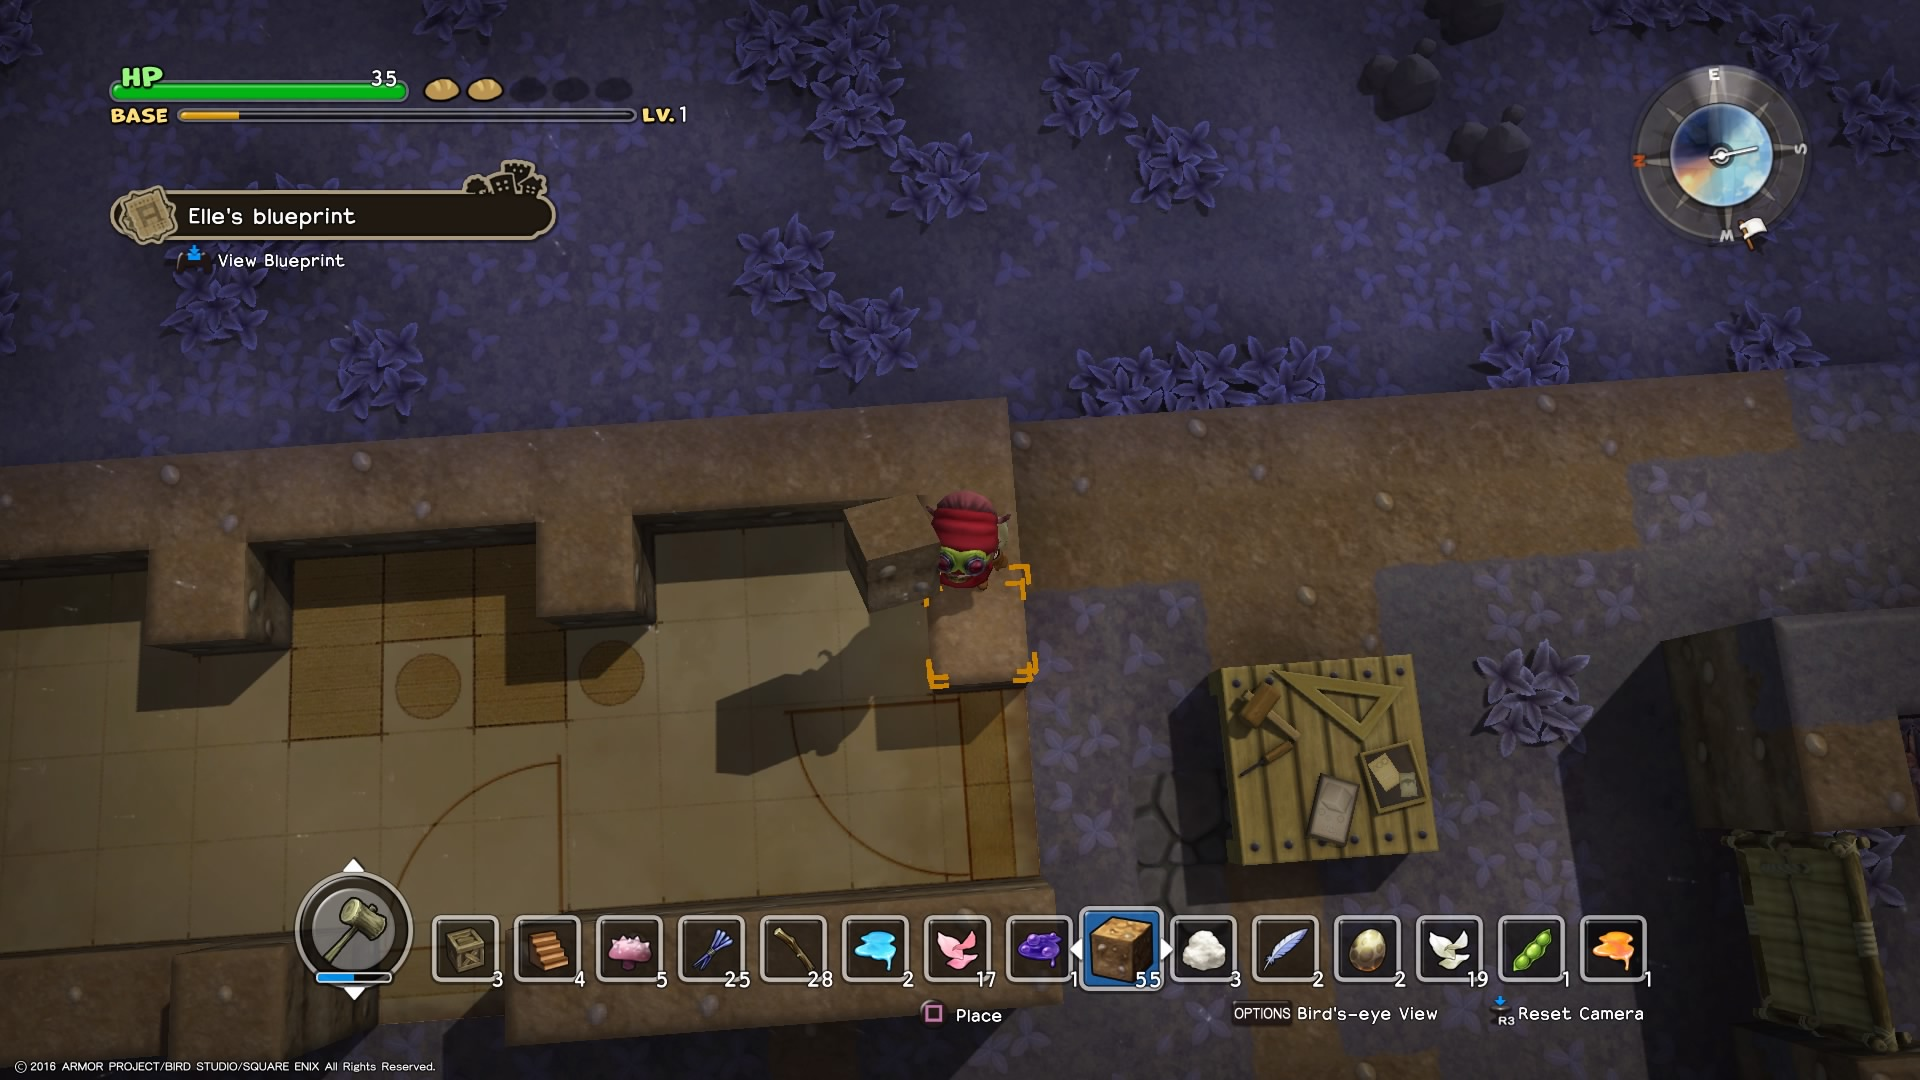 Dragon quest builders how to unlock doors in chapter 2 by creating can sometimes lead to sticking pointslike say for example where on earth you can get some keys to unlock the doors scattered around chapter 2 malvernweather